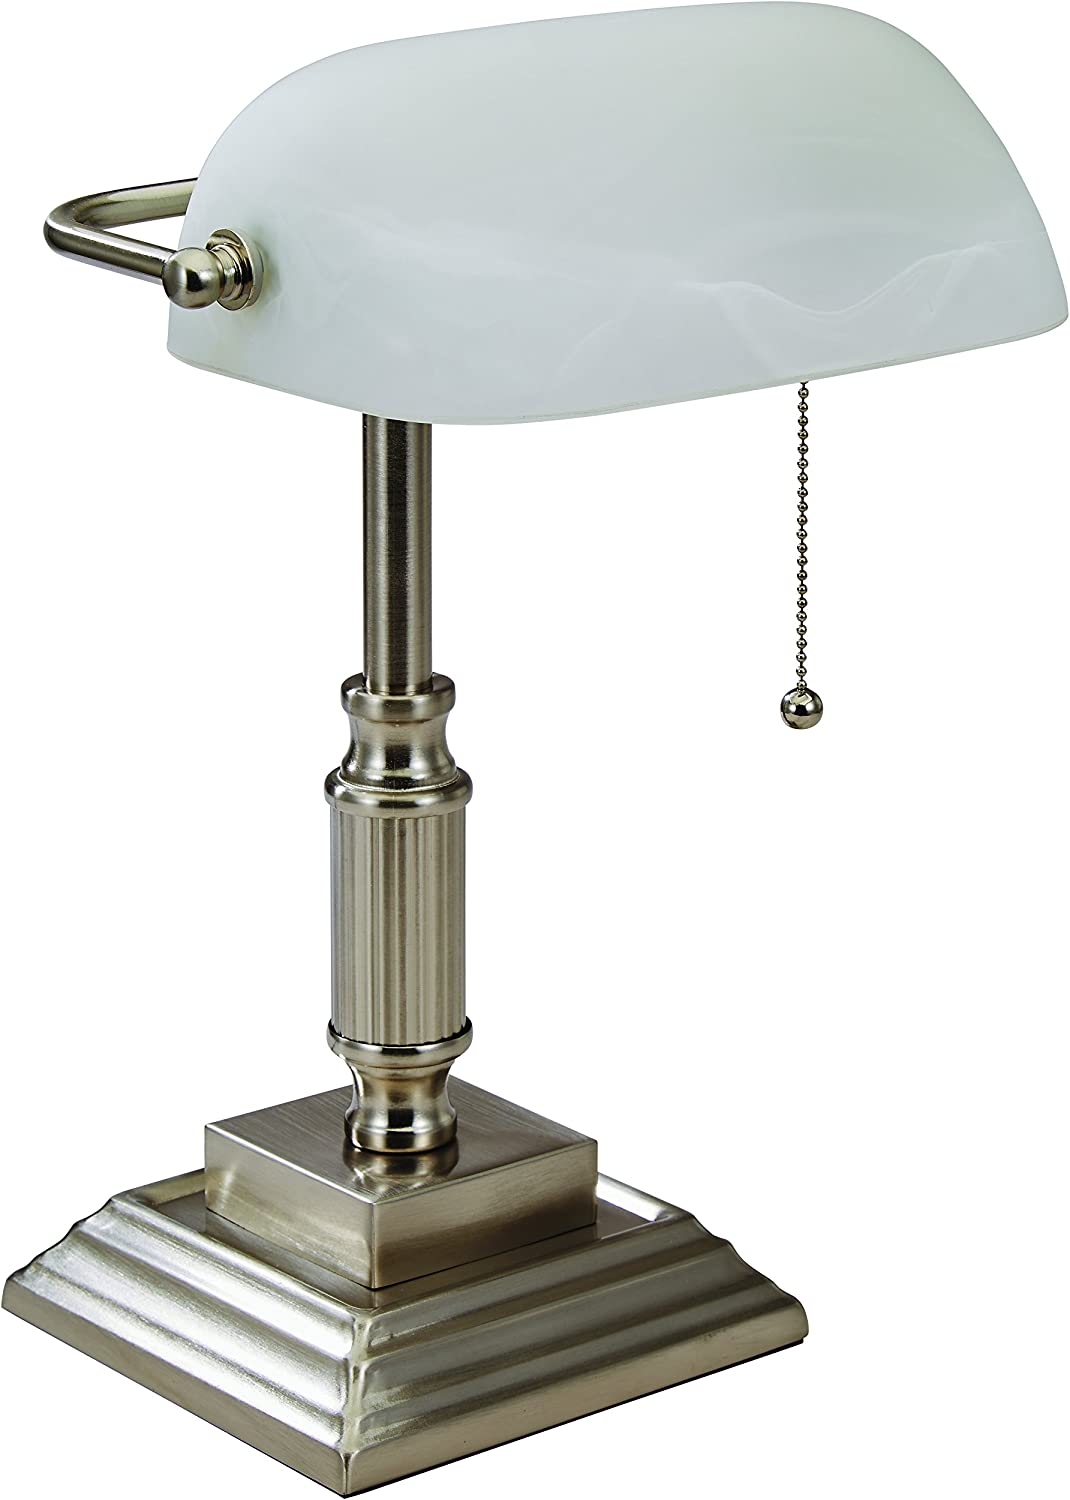 V-LIGHT White Shade Banker's Lamp with Replaceable LED Bulbs, Brushed Nickel Finish (8VS688029BN)